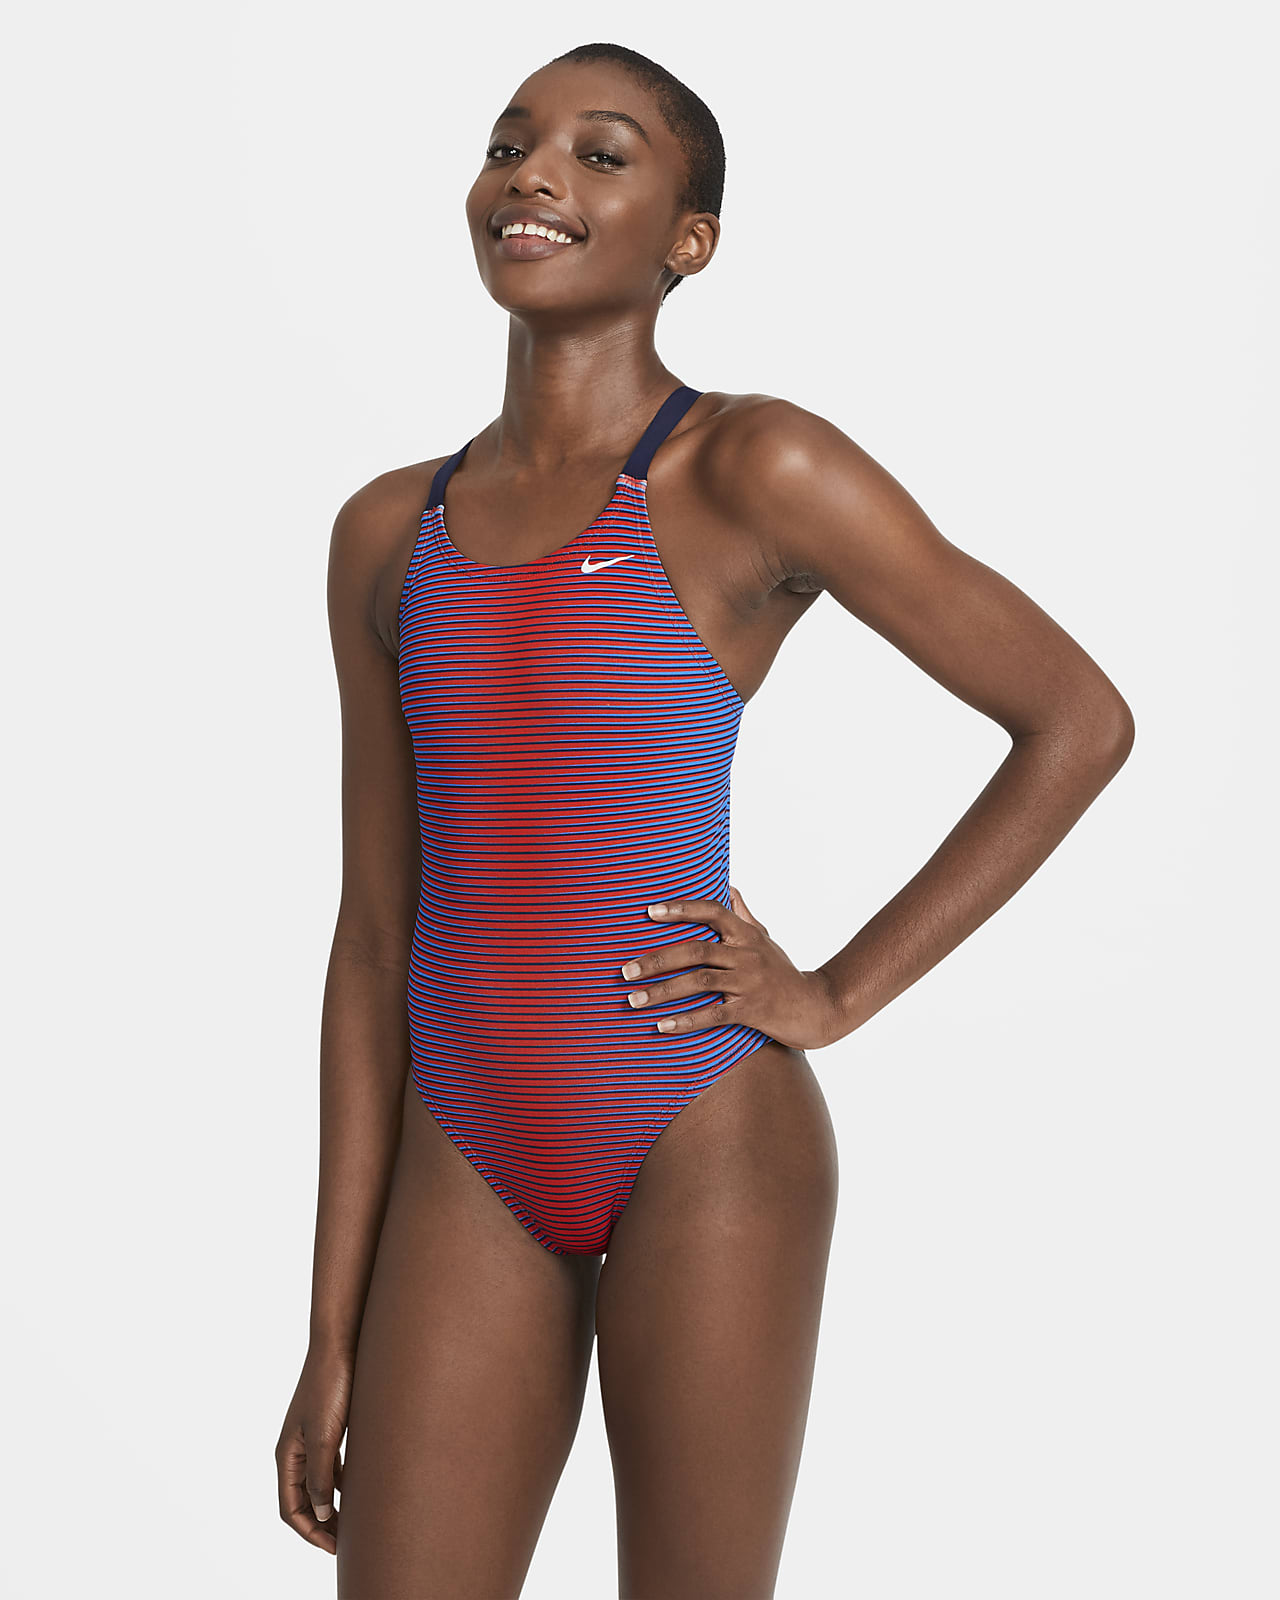 Nike HydraStrong Charge Fastback Women's 1-Piece Swimsuit